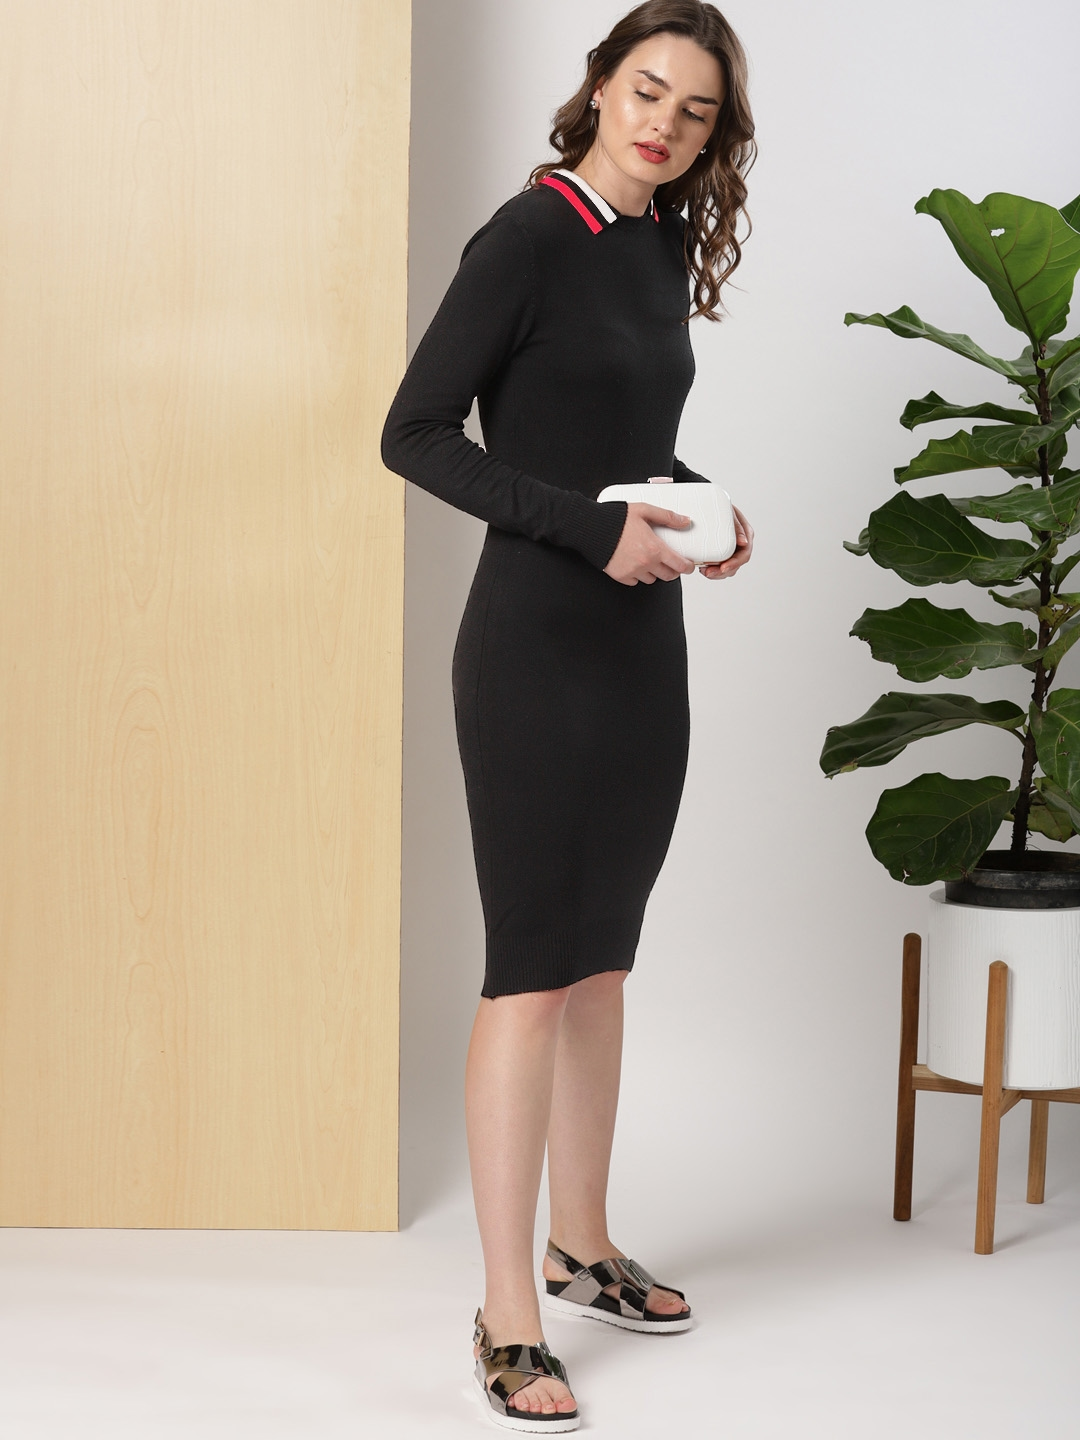 Buy Her By Invictus Women Black Solid Sweater Dress Dresses For